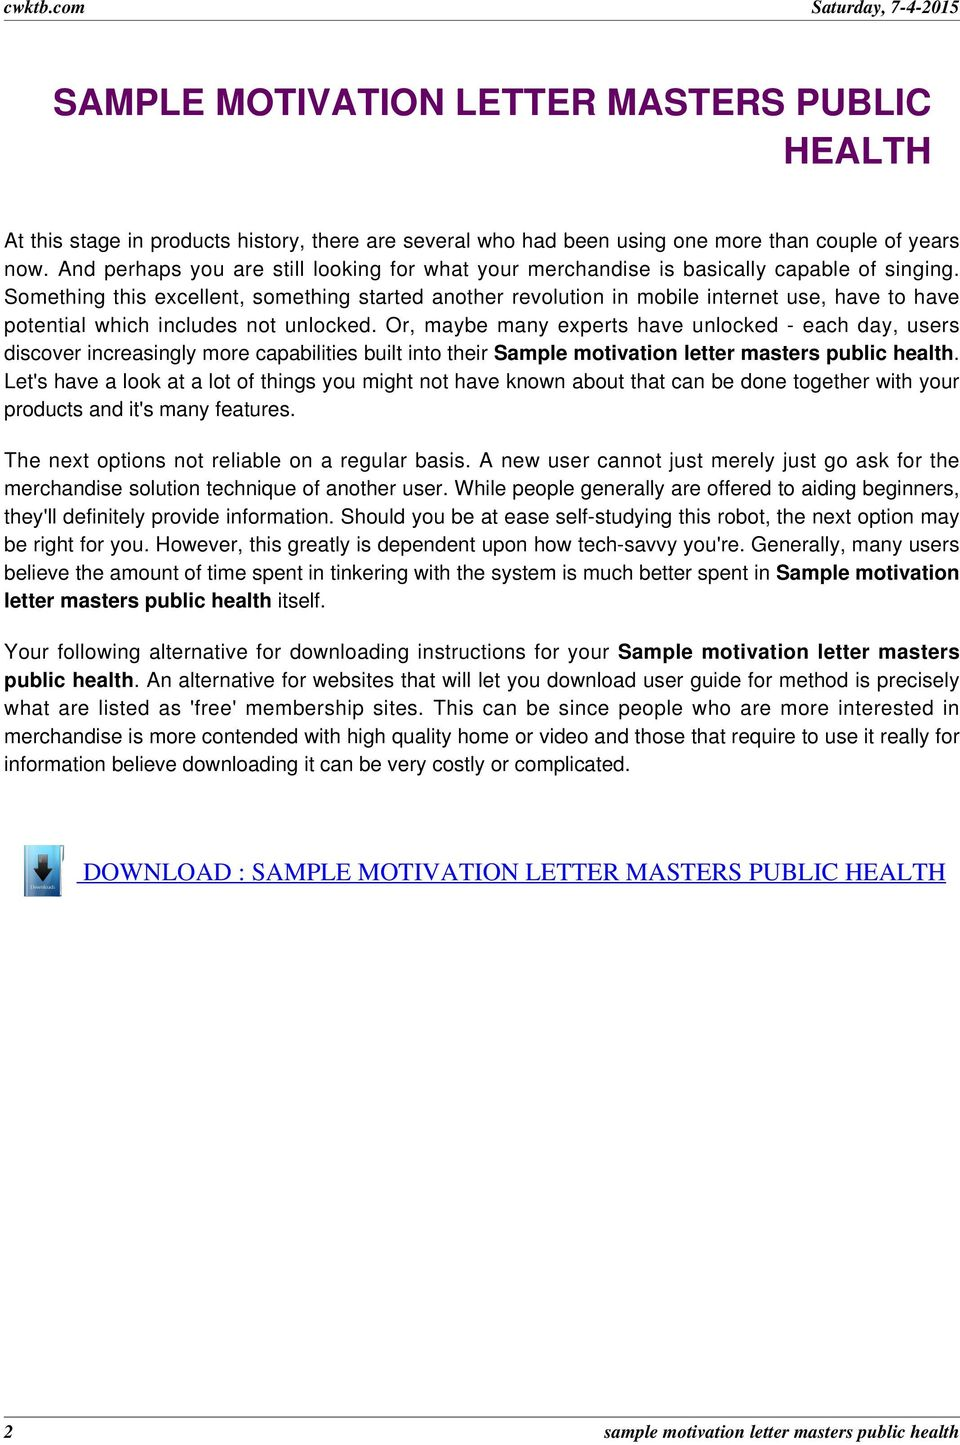 Motivation essay/letter for masters degree in public health essay writing tips topic sentence